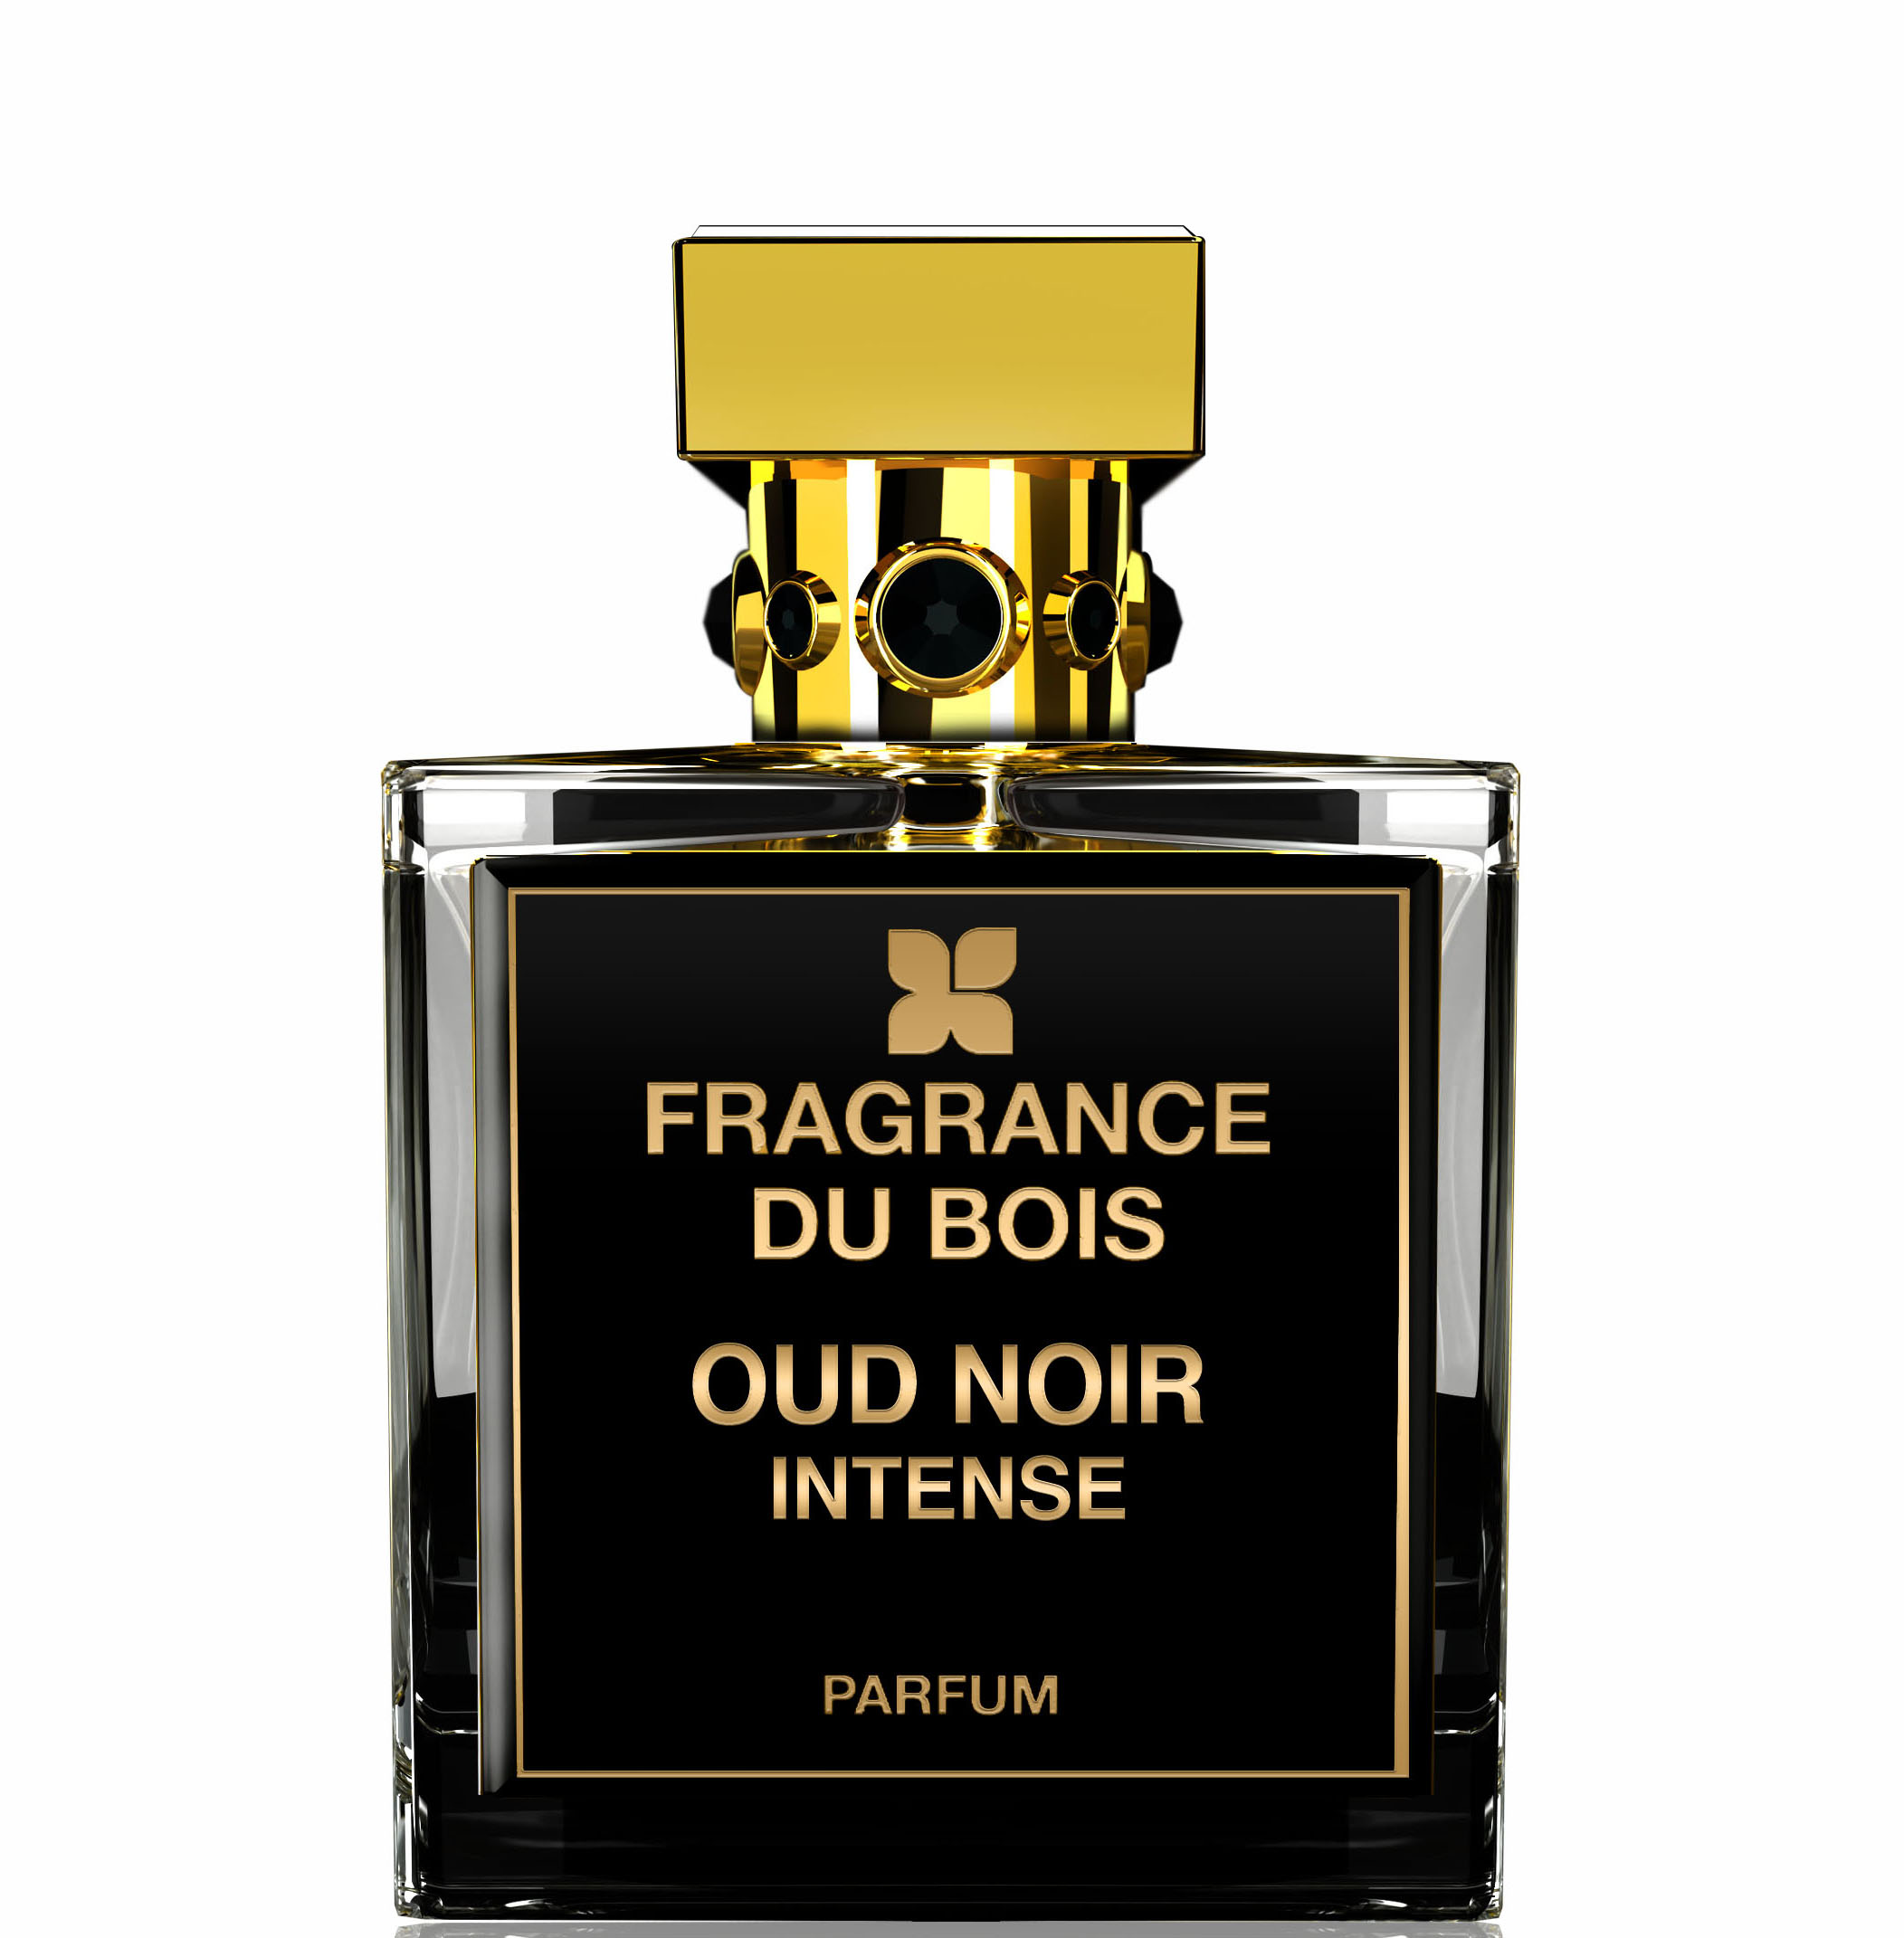 du bois single women This is the perfume that i wore as a young woman in my  feminite du bois shiseido perfume is liquid vintage  i've kept this single faith, i have but one.